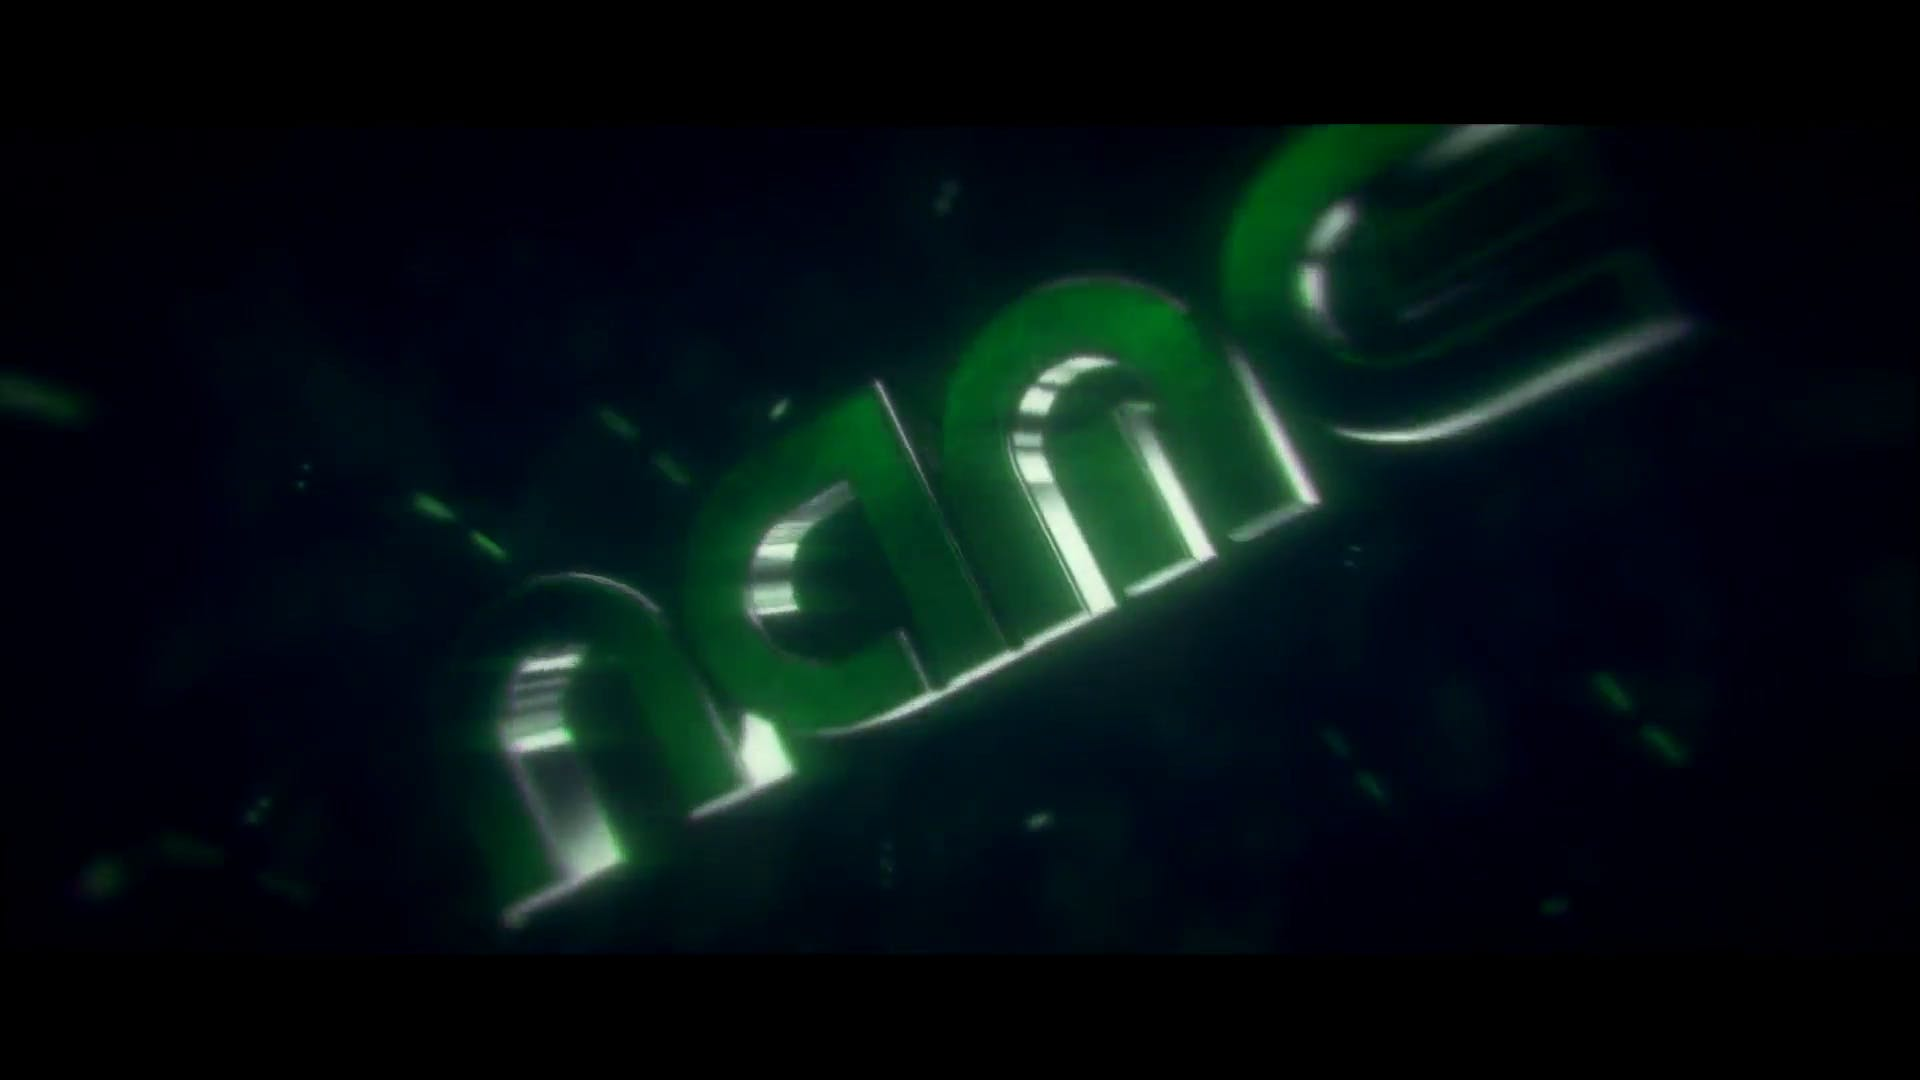 Green Smooth Cinema 4D After Effects FREE DOWNLOAD